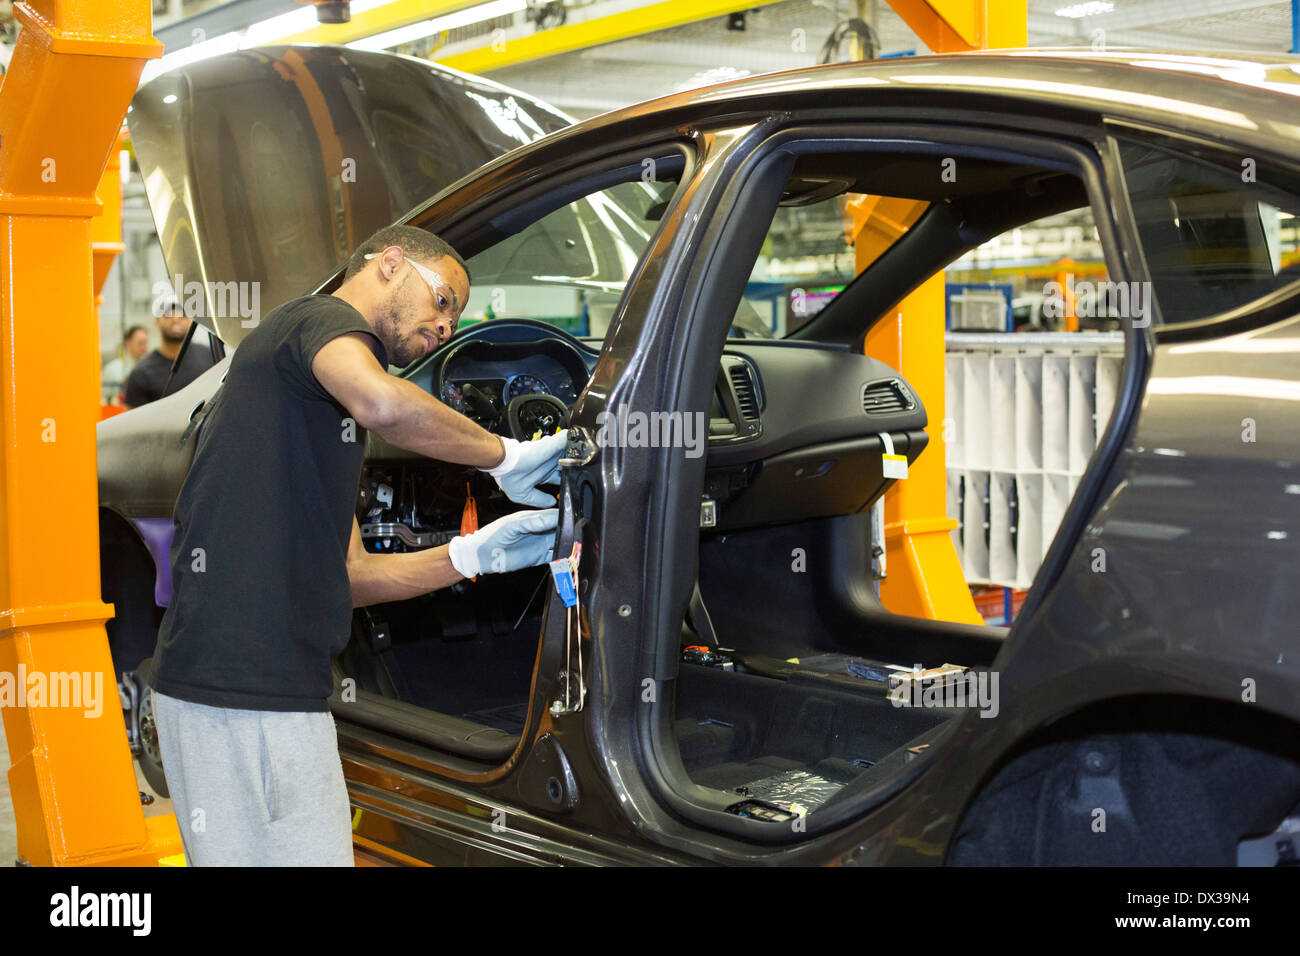 Chrysler's Sterling Heights Assembly Plant, where the Chrysler 200 is assembled. - Stock Image